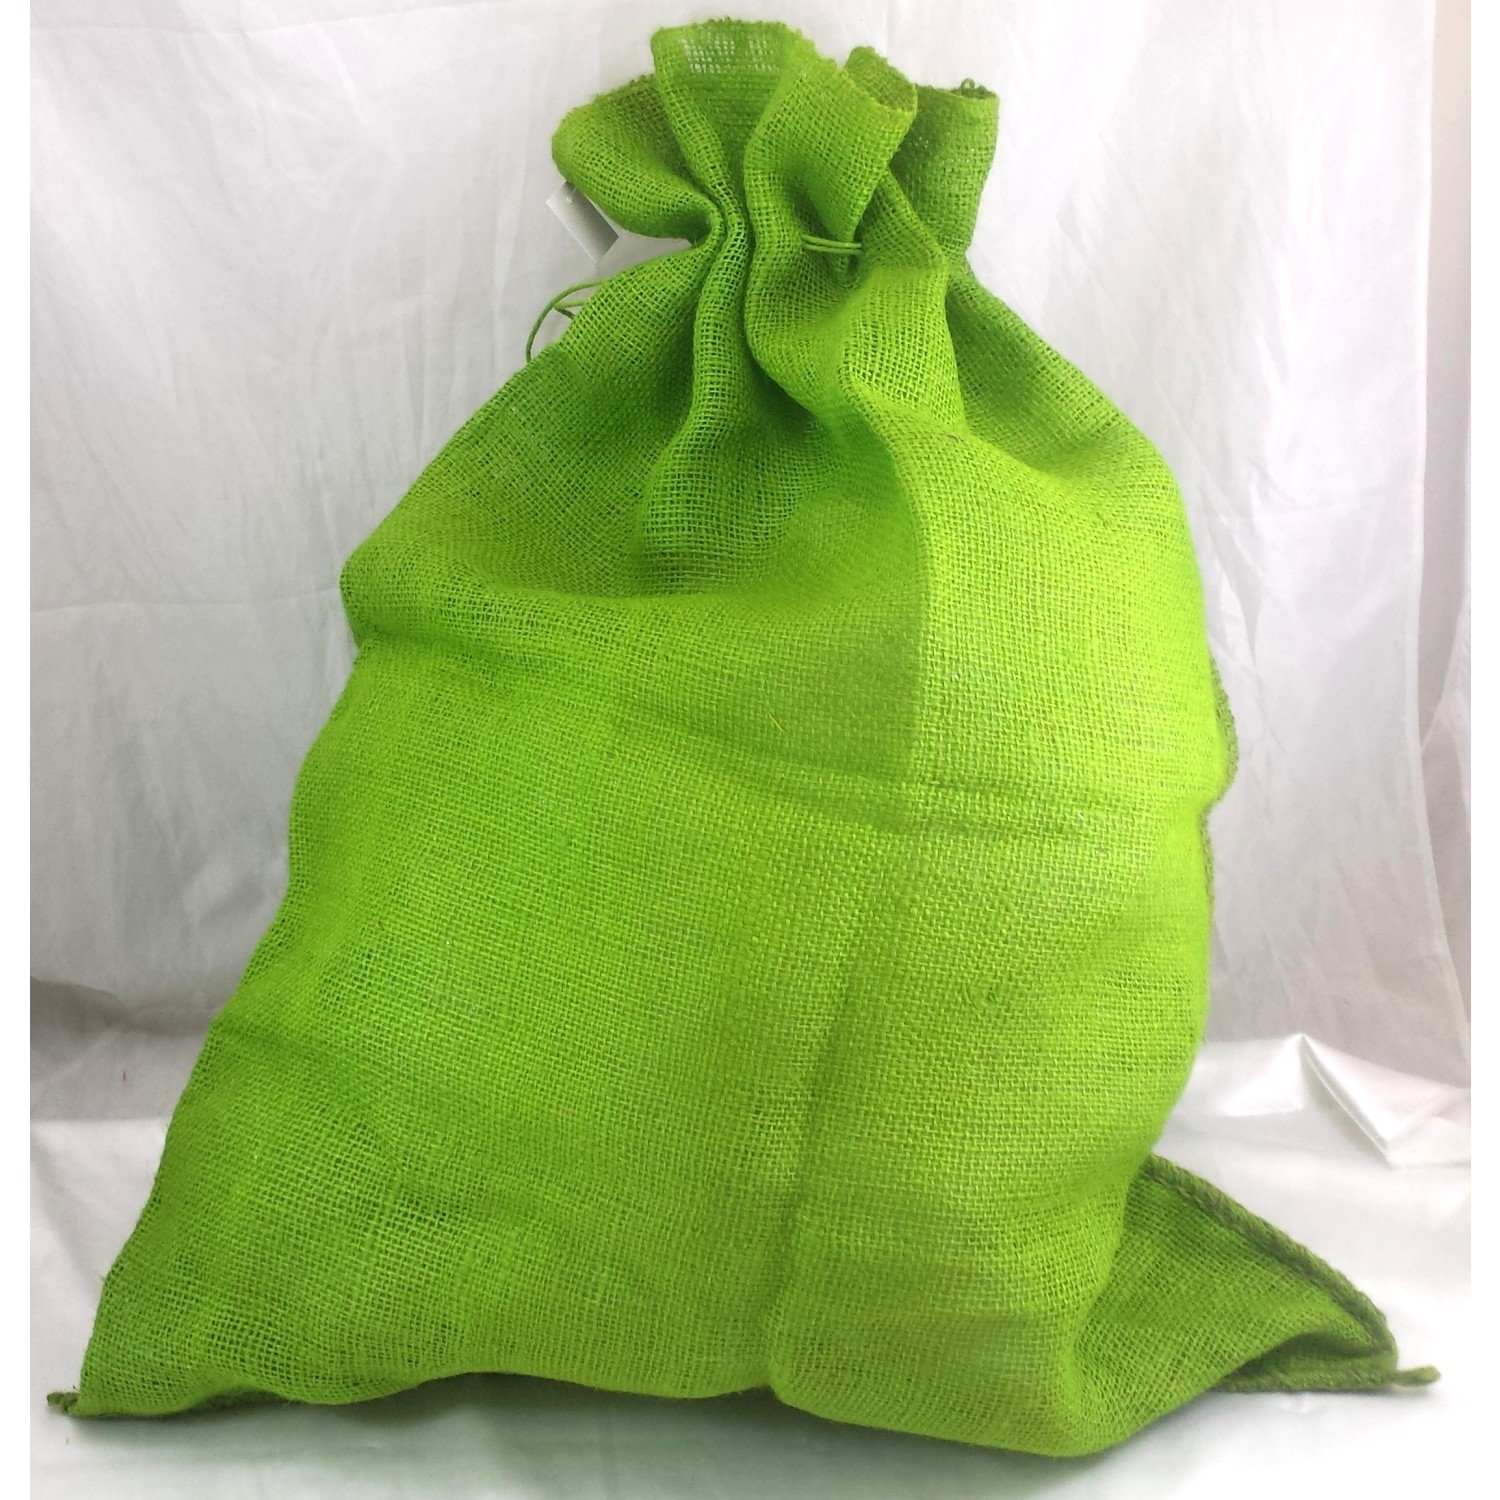 Kel-Toy Christmas and Everyday Gift Wrap & Crafting Jute Sacks in 3 Colors BUYERS' CHOICE (2, green)